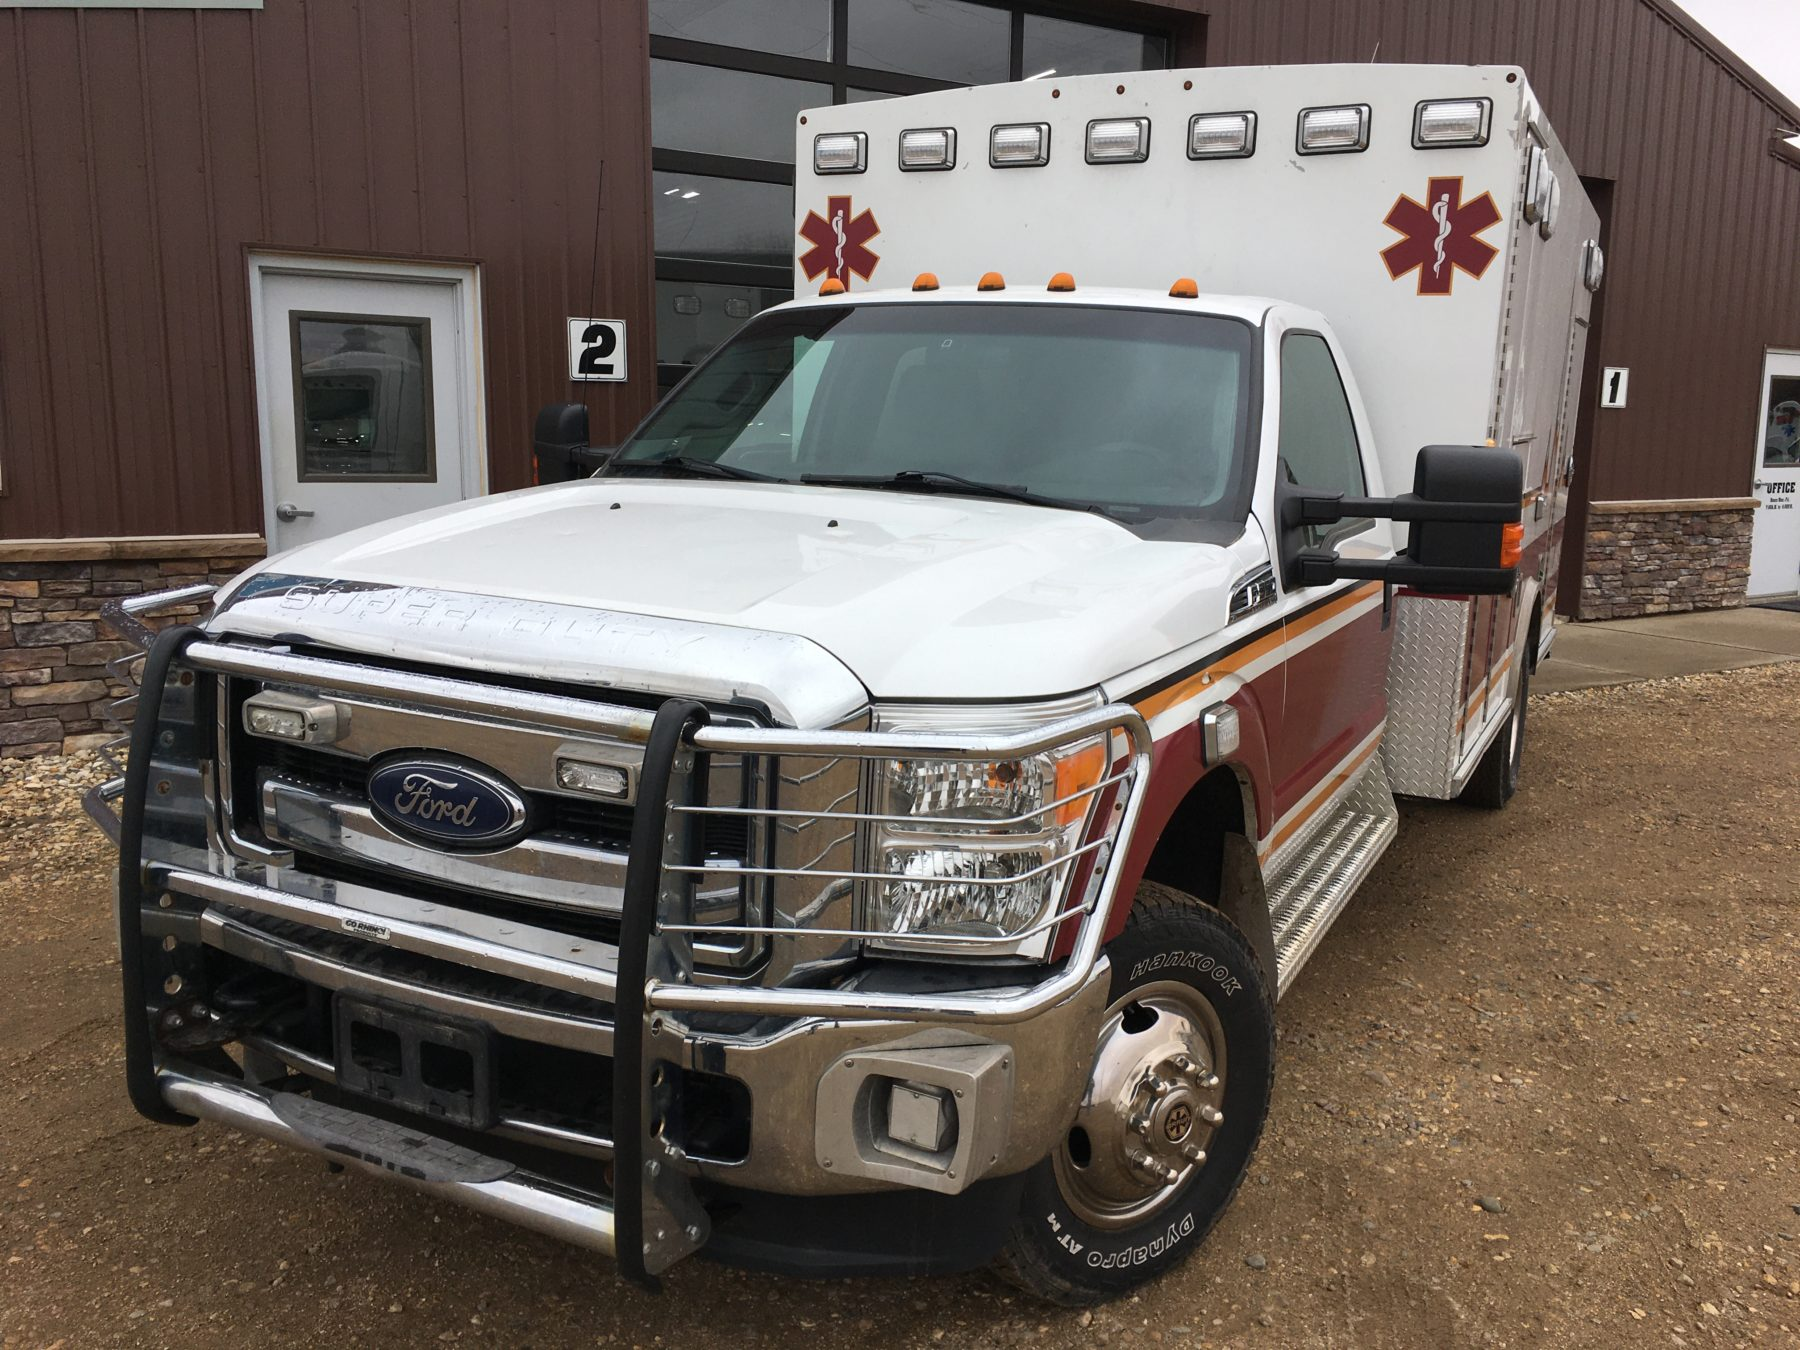 2012 Ford F350 4x4 Type 1 Ambulance For Sale – Picture 4